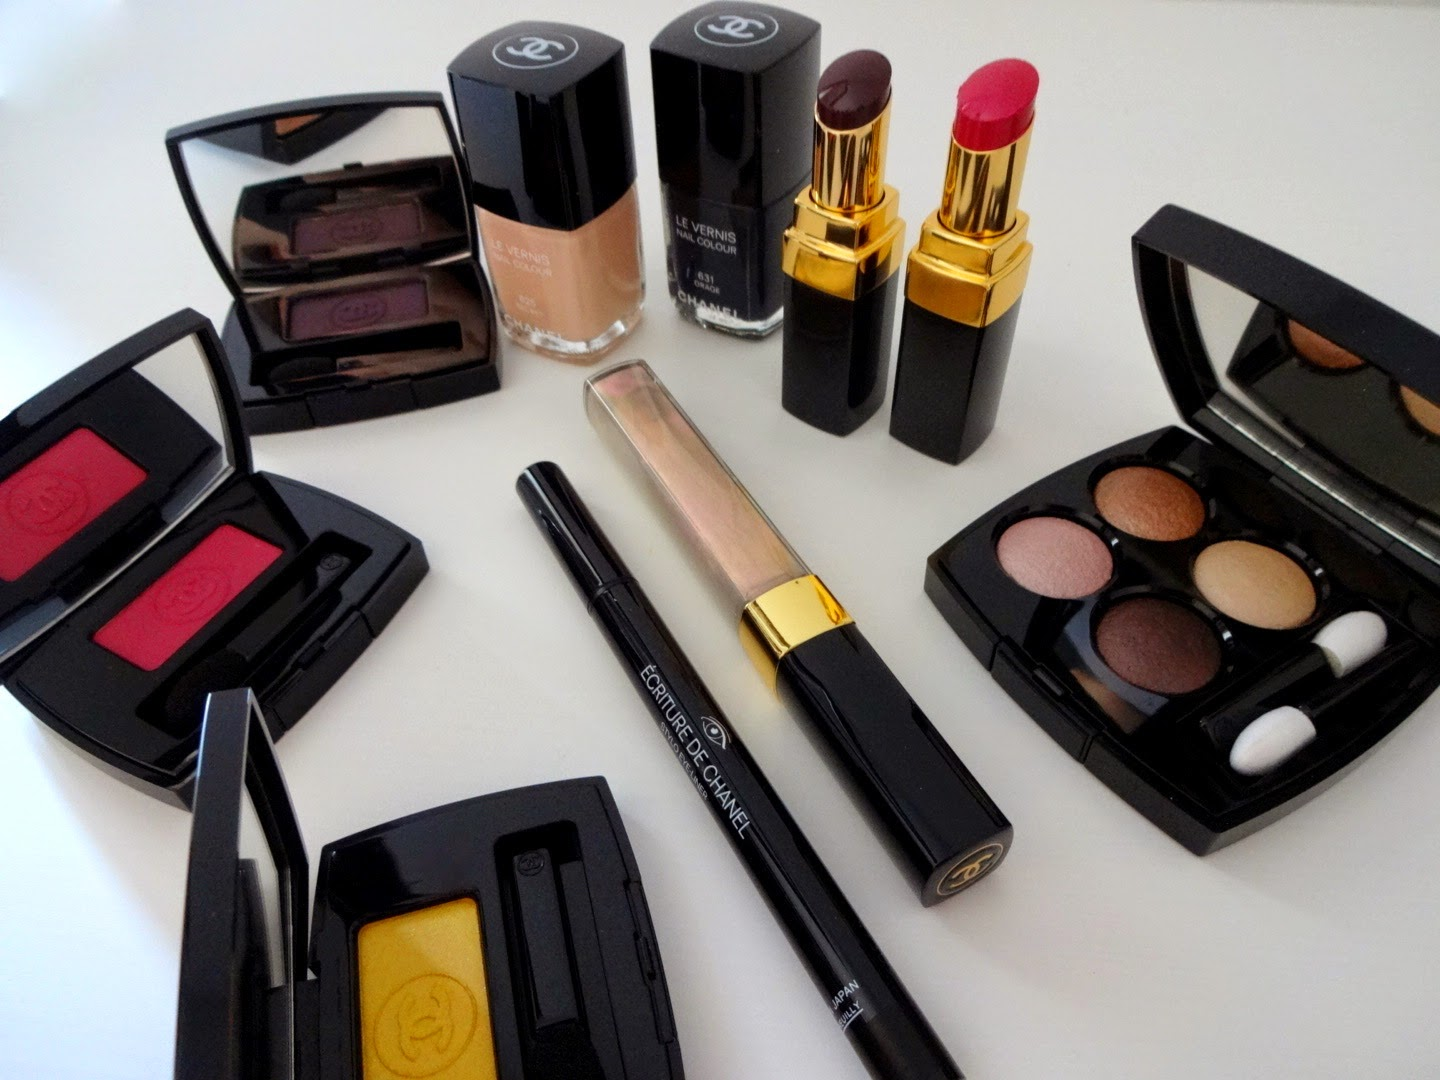 chanel make up autunno 2014, chanel etats poetiques collection, chanel les 4 ombres poesie, chanel le vernis